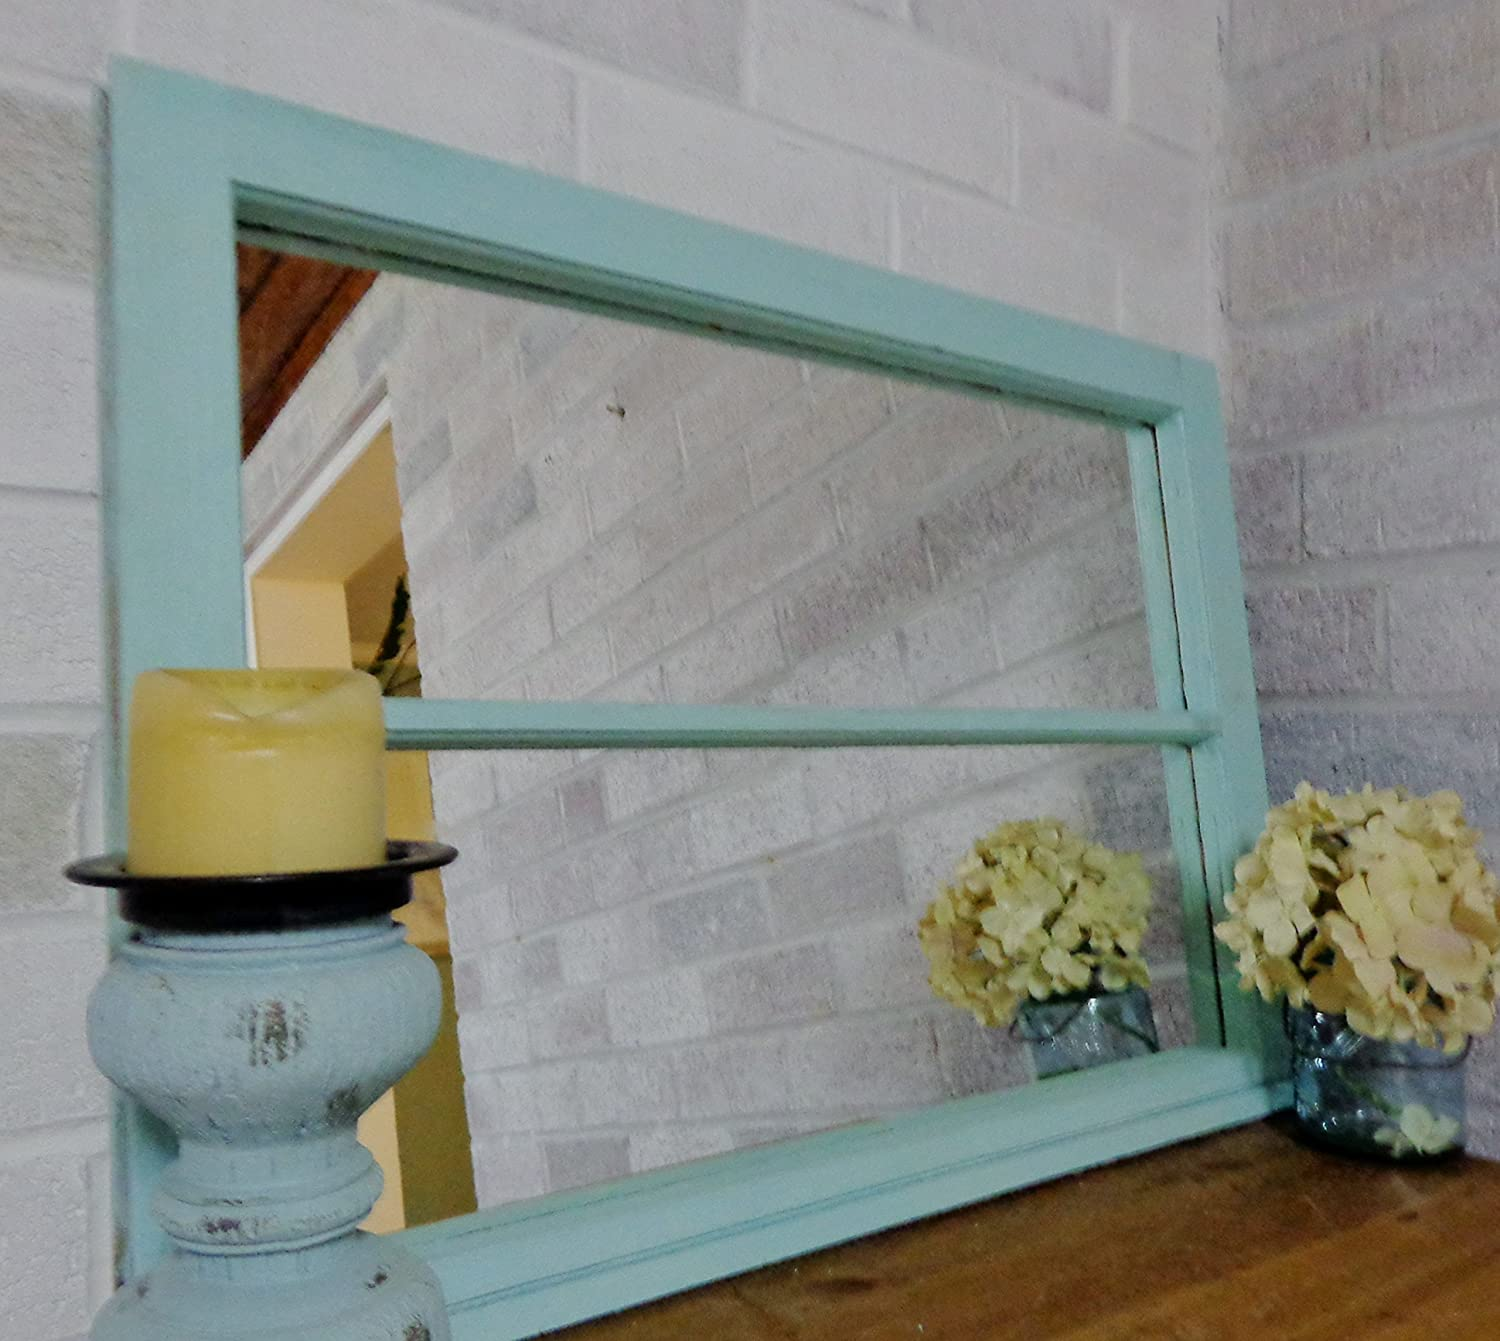 Renewed Decor Window Pane Mirror Featuring 2 Panes - Mirror - 24x31 inch Wall Mirror - salvaged window - reclaimed window - distressed window - painted mirror- unique mirror